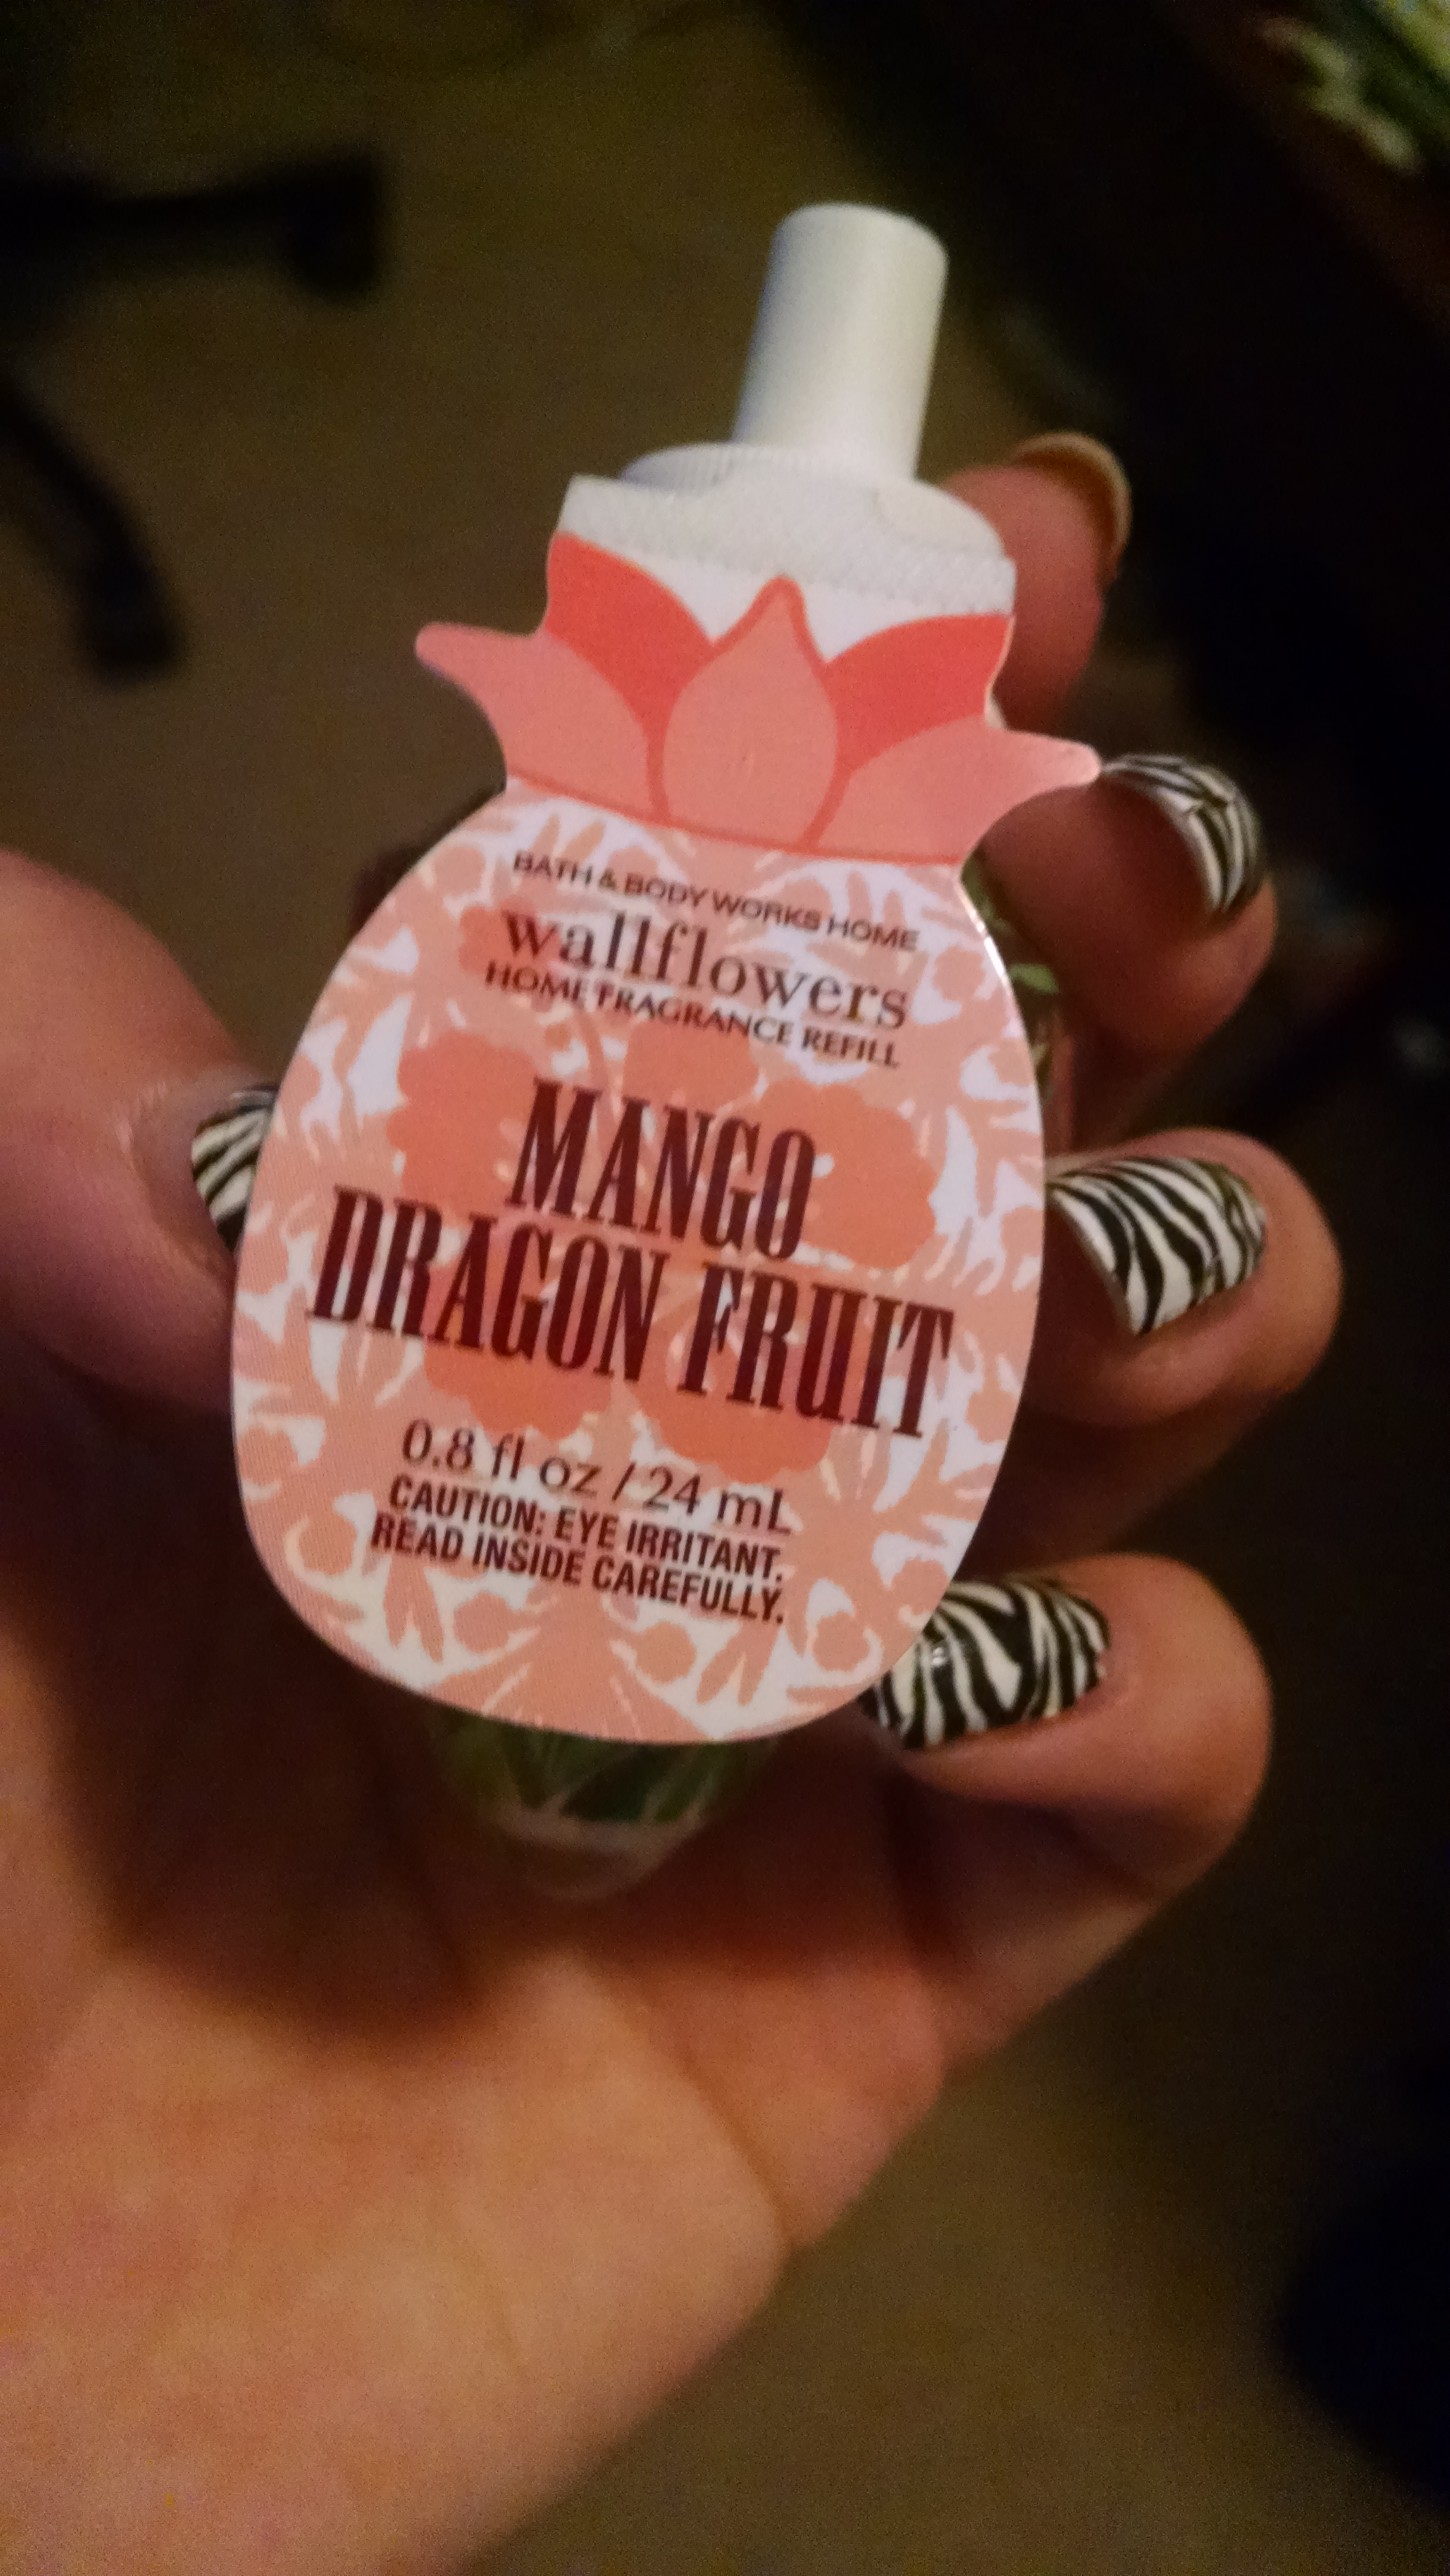 Mango Dragon Fruit